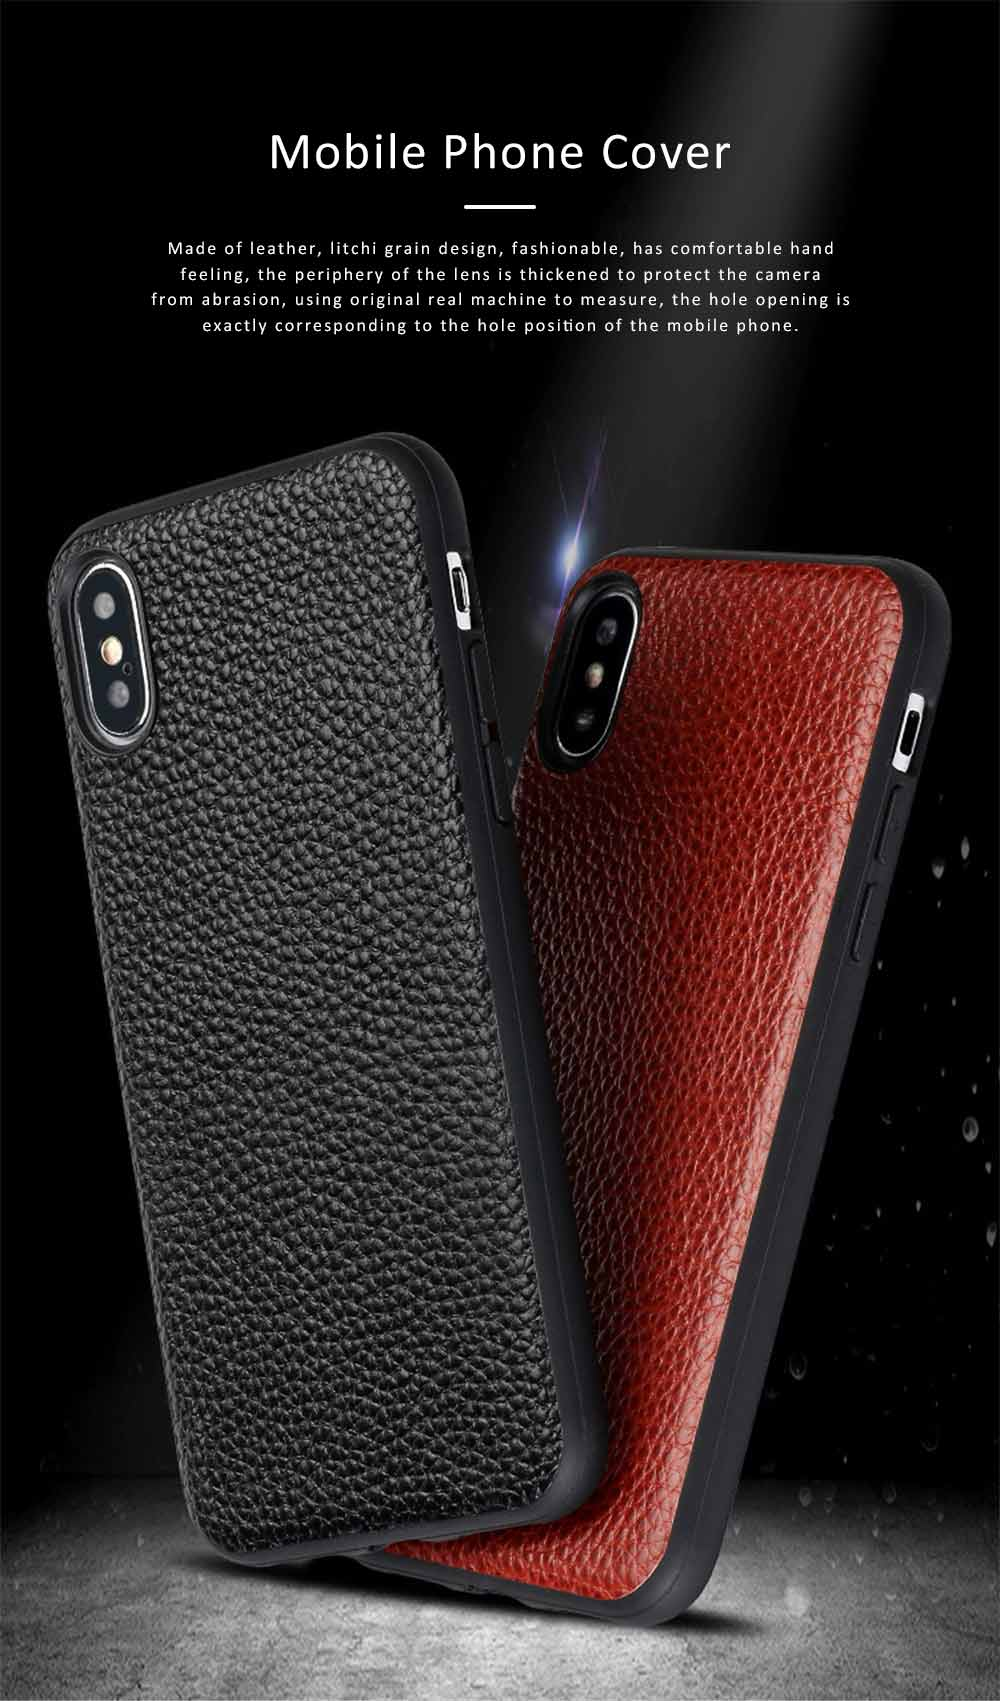 Durable Fashionable Leather Protective Case Mobile Cover for Xiaomi 8/ 8se/ Max3/ 6X 0